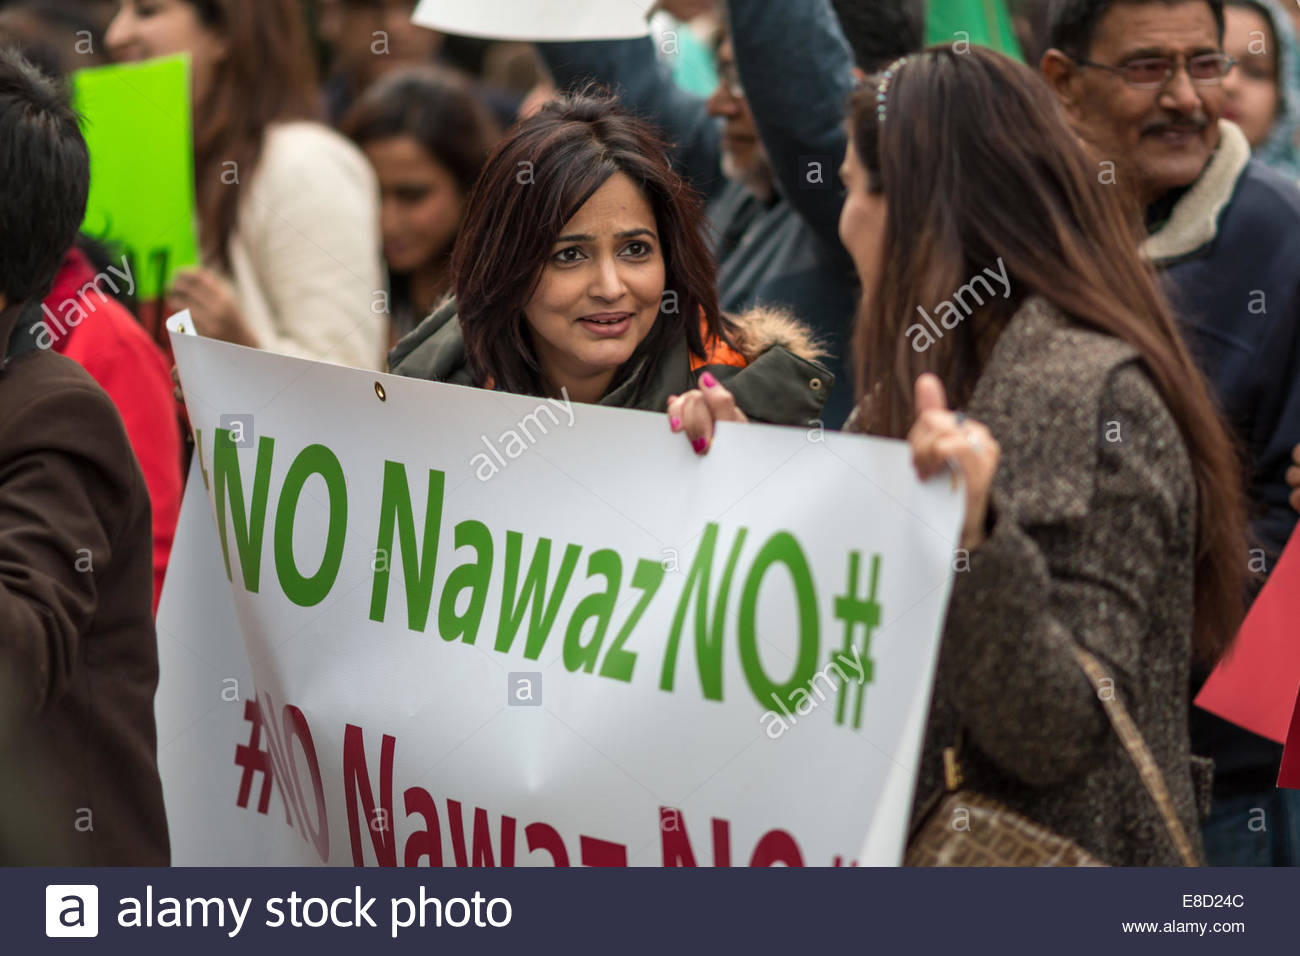 Women holding a sign stating, 'No Nawaz NO' during a protest against Nawaz Sharif, Prime Minister of Pakistan. - Stock Image